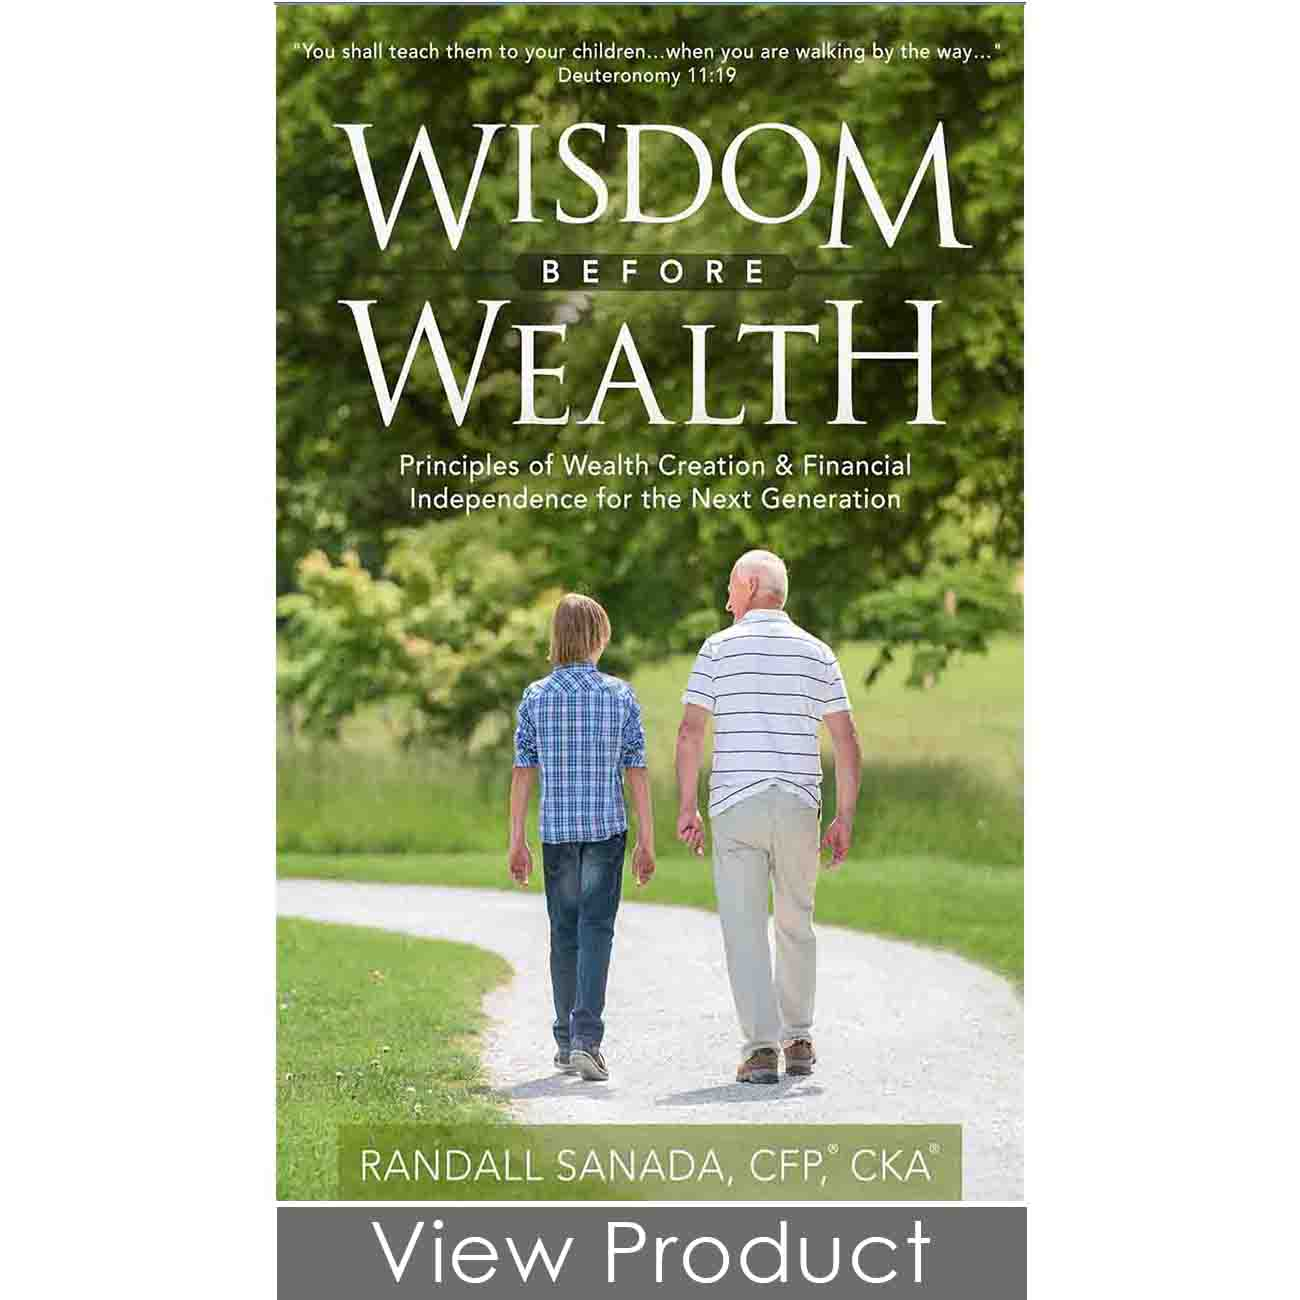 Wisdom Before Wealth